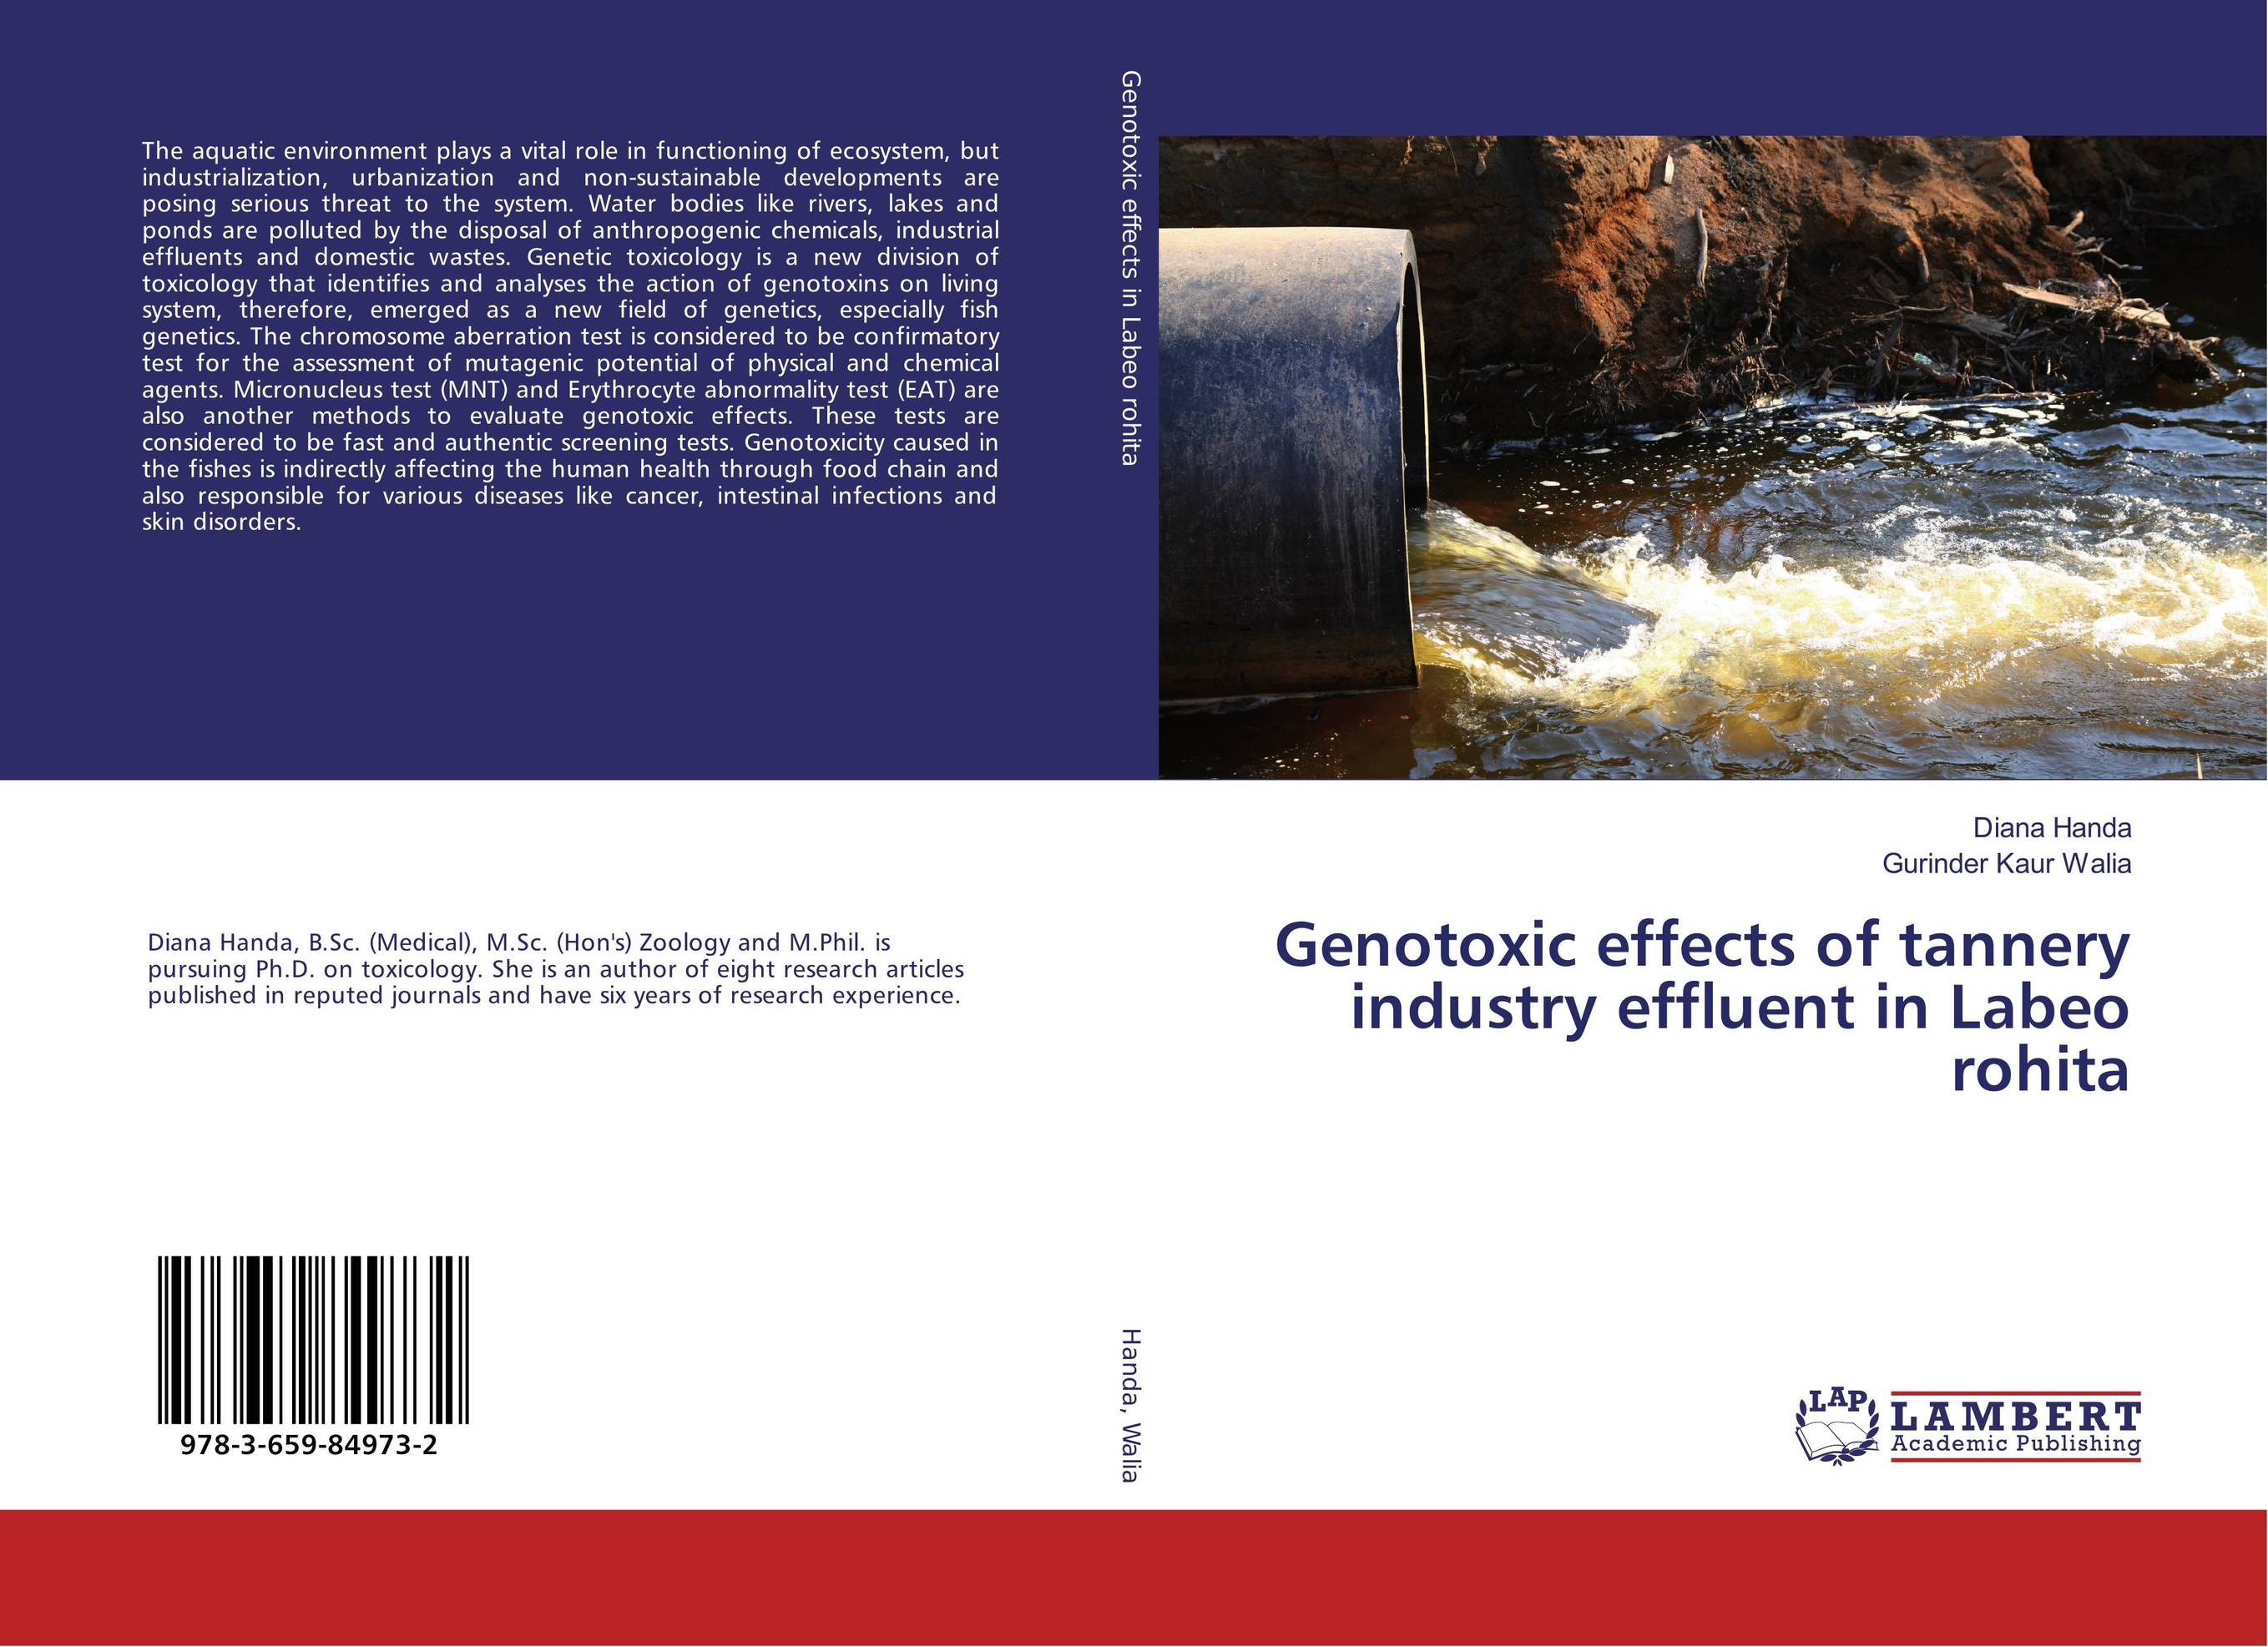 Genotoxic effects of tannery industry effluent in Labeo rohita genotoxic effects of tannery industry effluent in labeo rohita